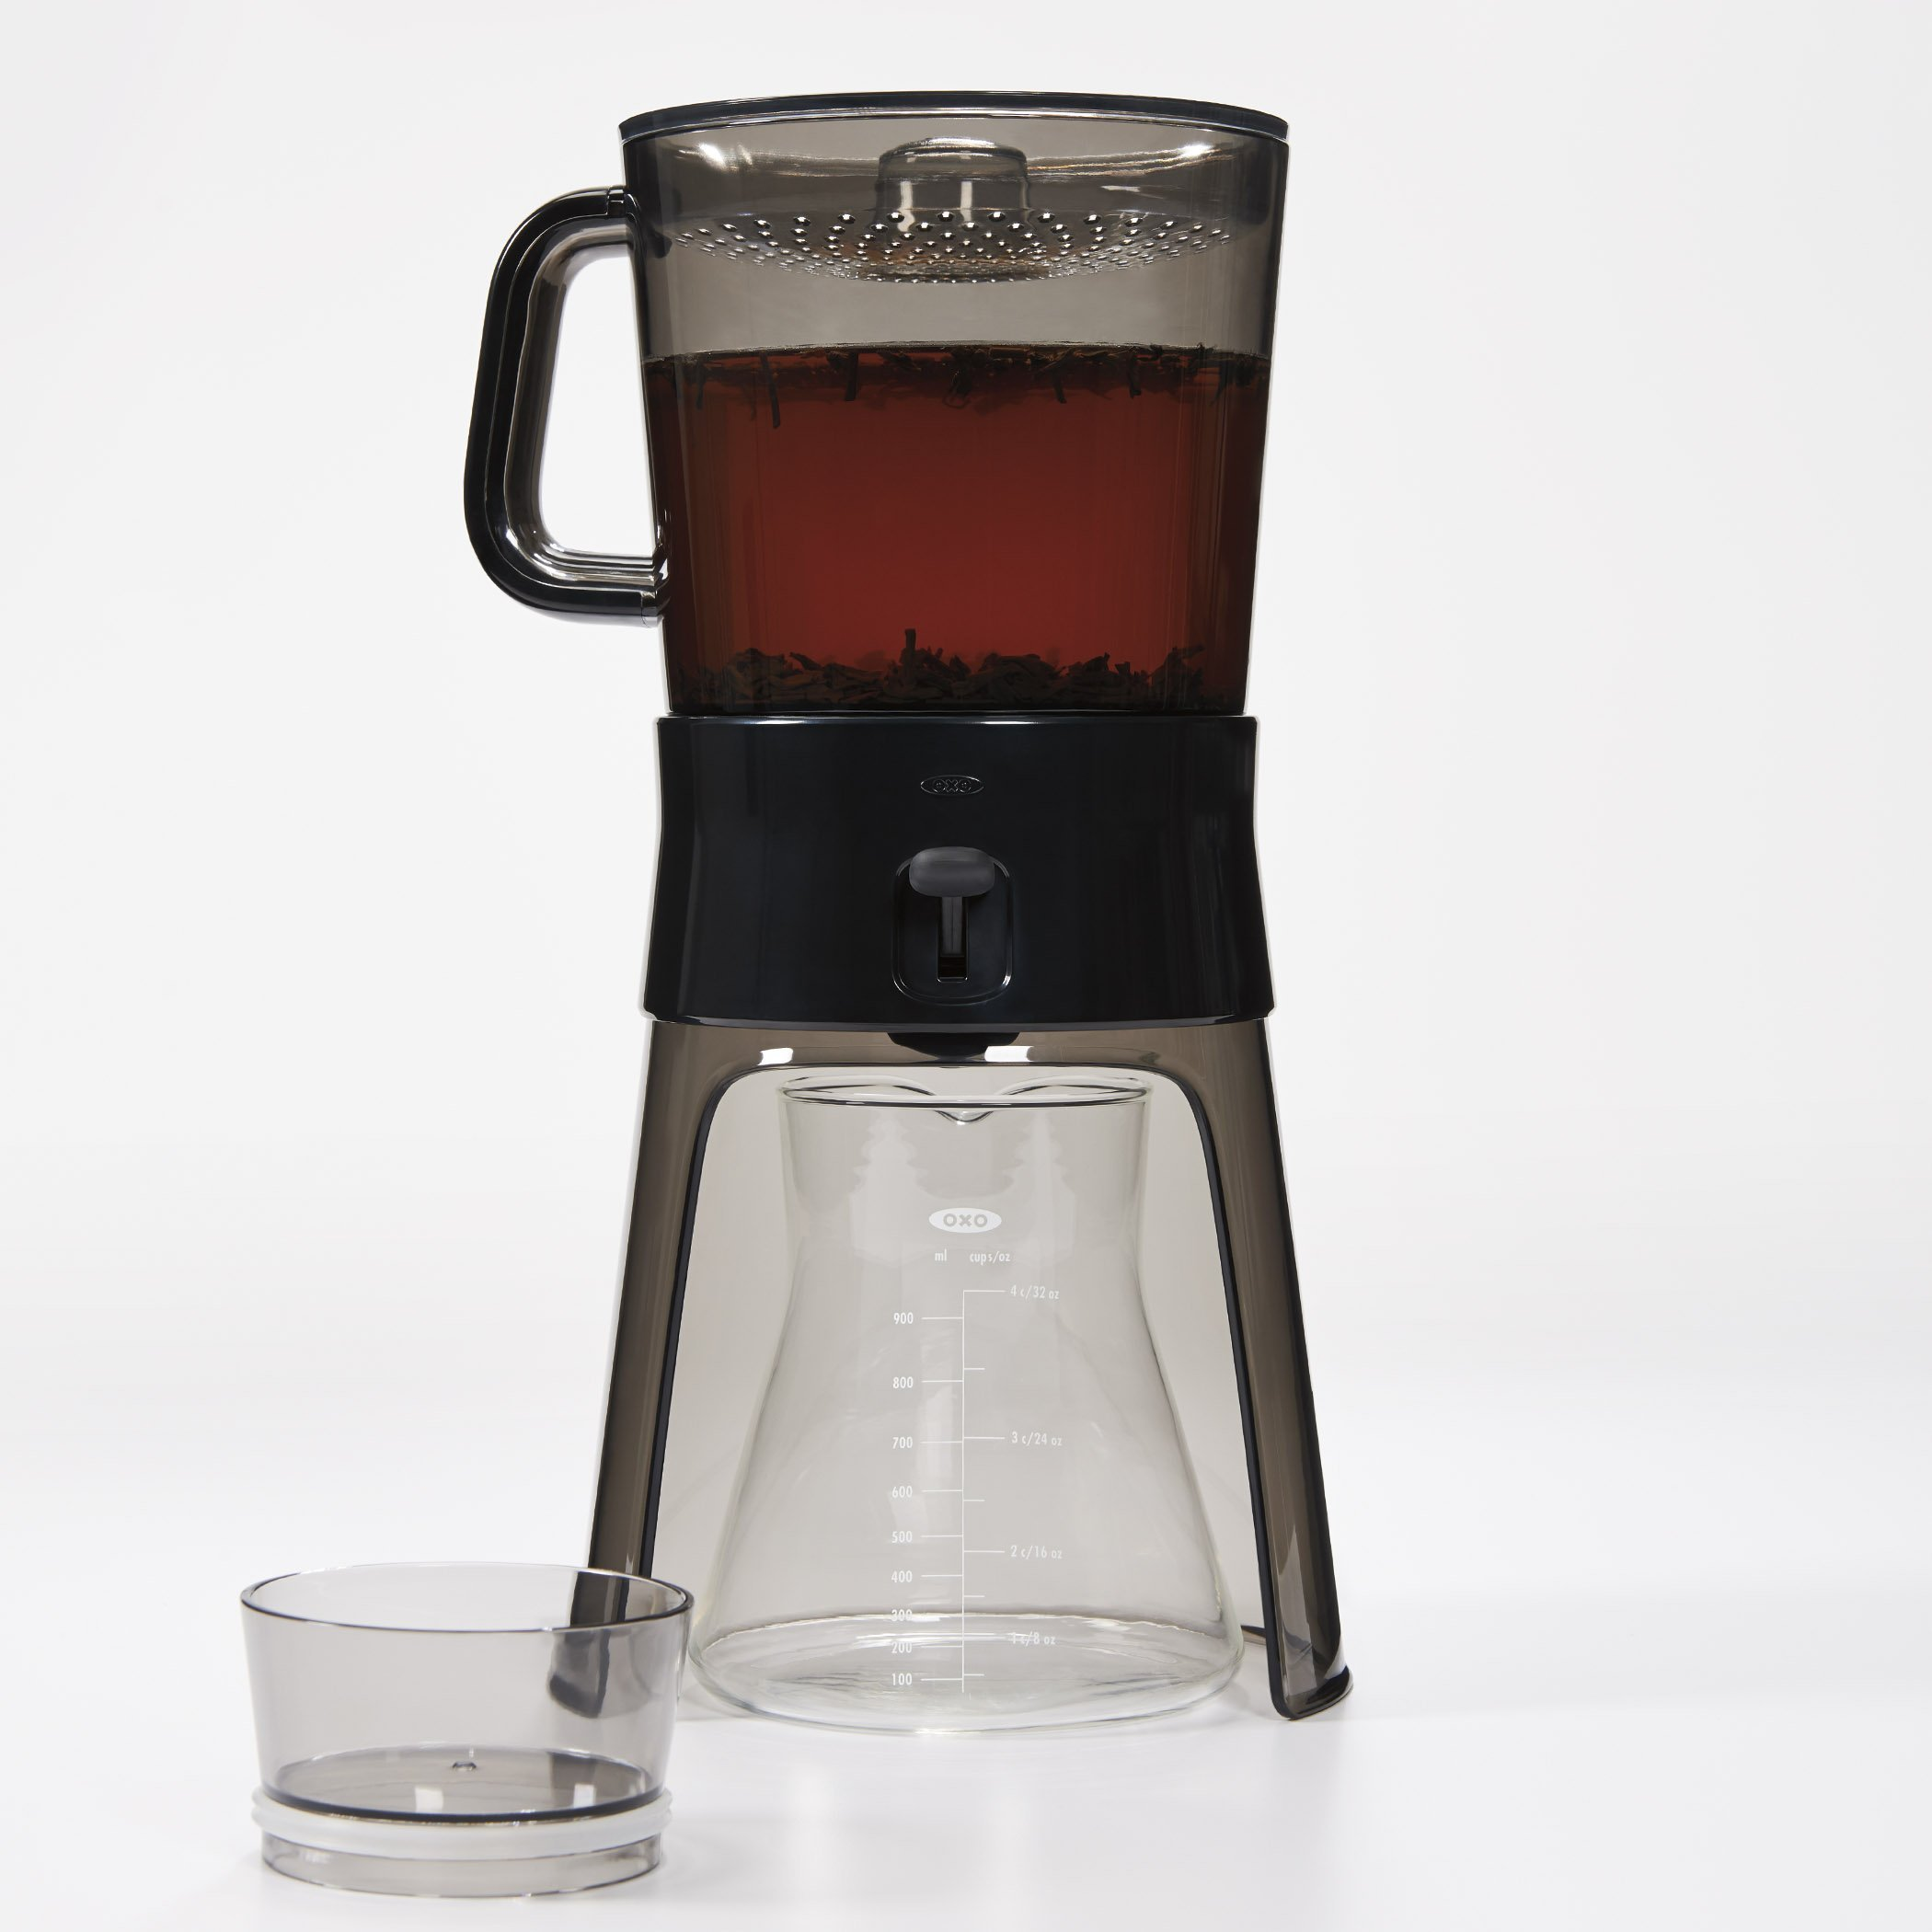 Oxo Coffee Maker Warranty : Galleon - OXO Good Grips Cold Brew Coffee Maker